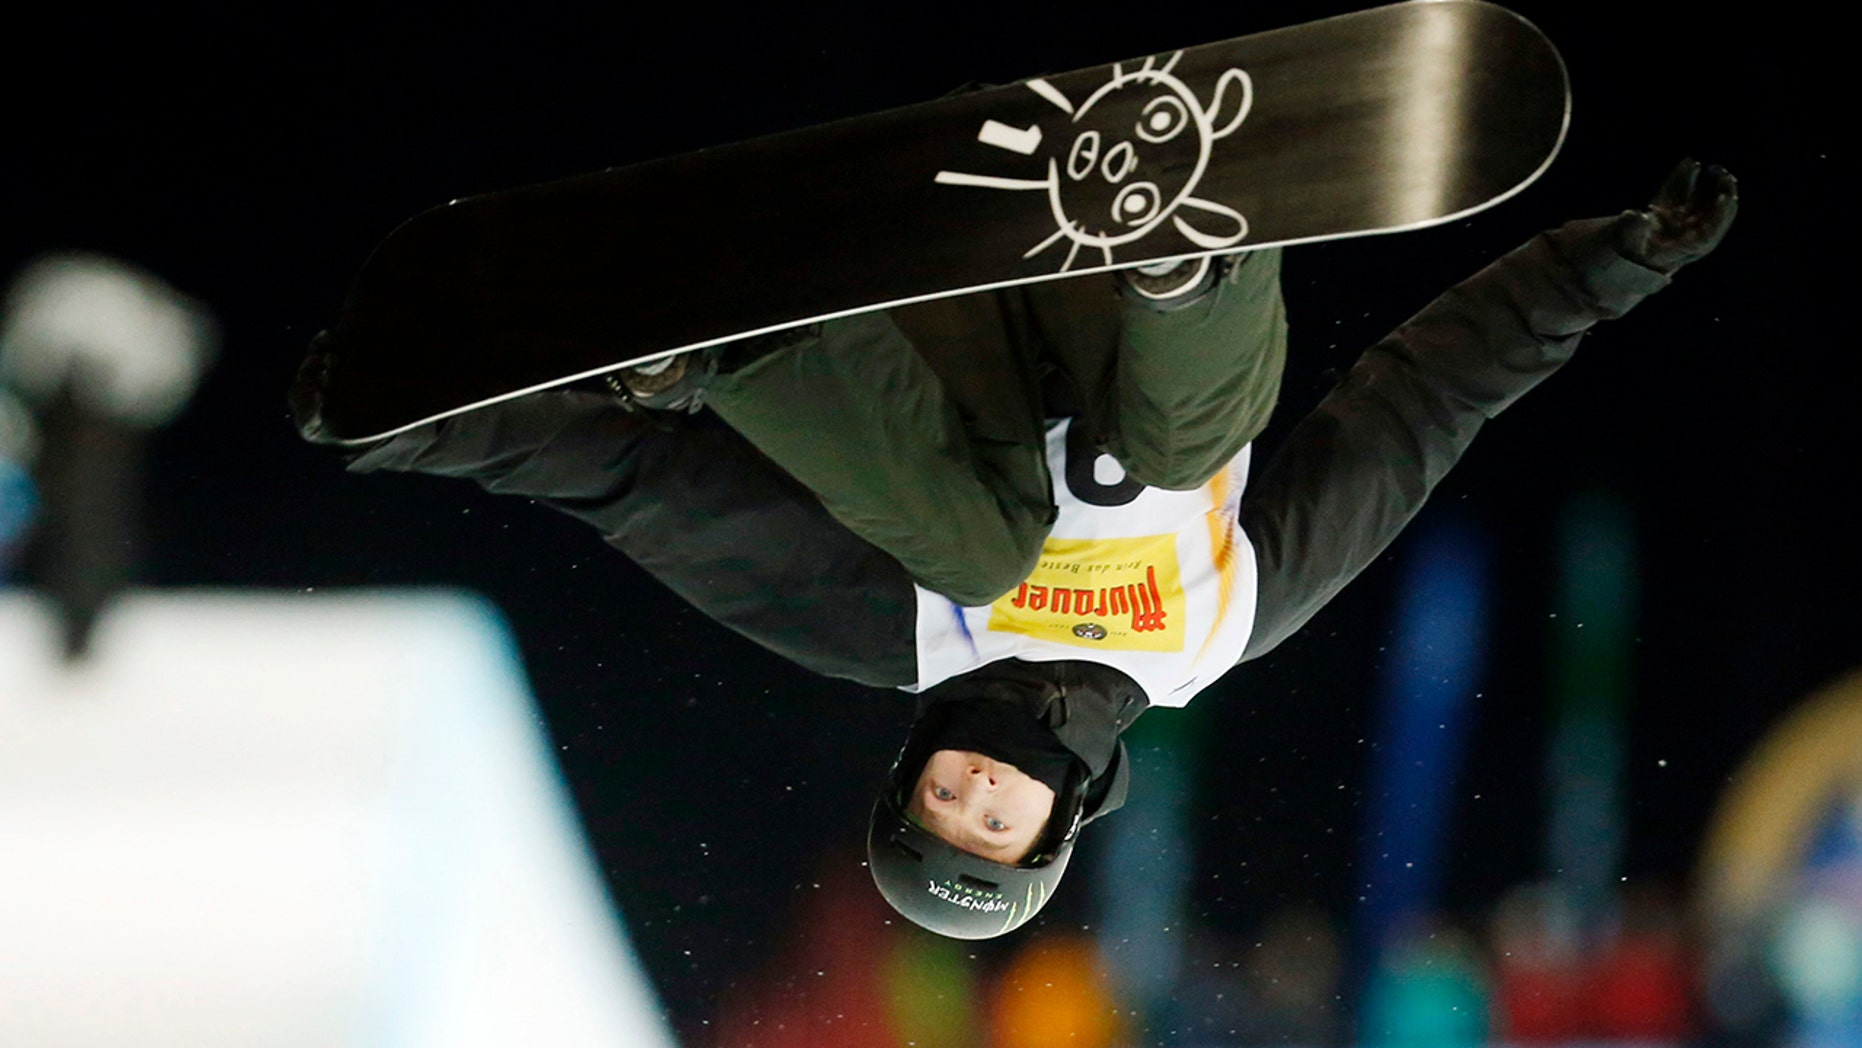 FILE - In this Jan. 17, 2015, file photo, Switzerland's Iouri Podladtchikov competes to place fourth at the snowboard halfpipe final at the Freestyle Ski and Snowboard World Championships in Kreischberg, Austria.